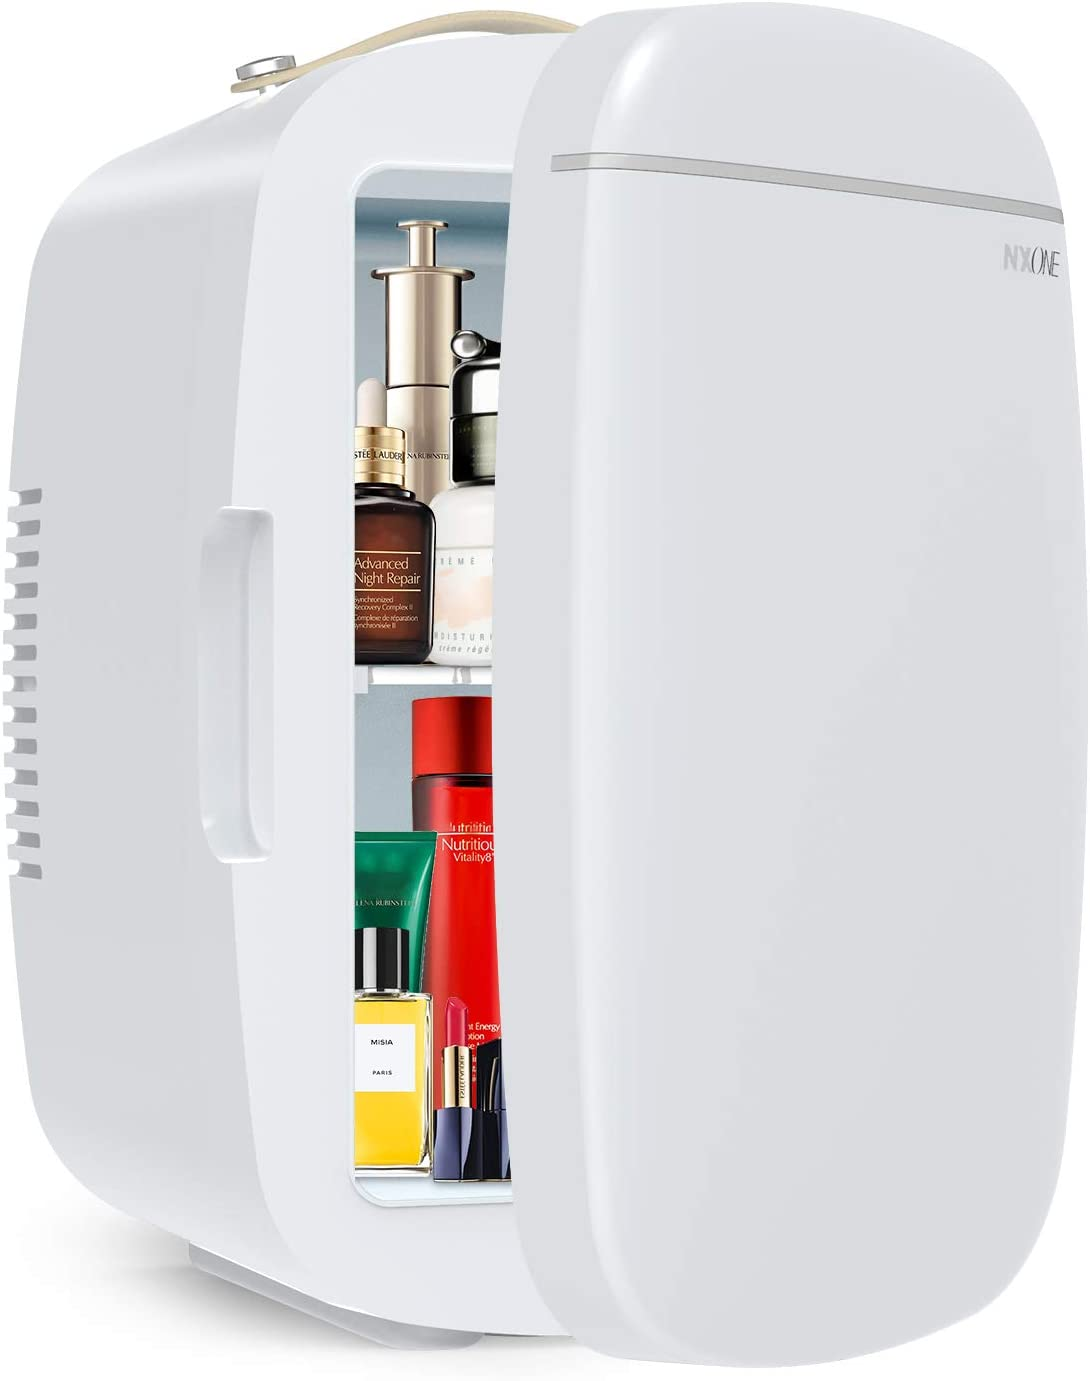 NXONE Mini Fridge, 6 Litres Cooler Warmer and Compact Refrigerator with AC/DC Power, Portable Makeup Skincare & Cosmetics Fridge Great for Bedroom, Office, Car, Dorm, White